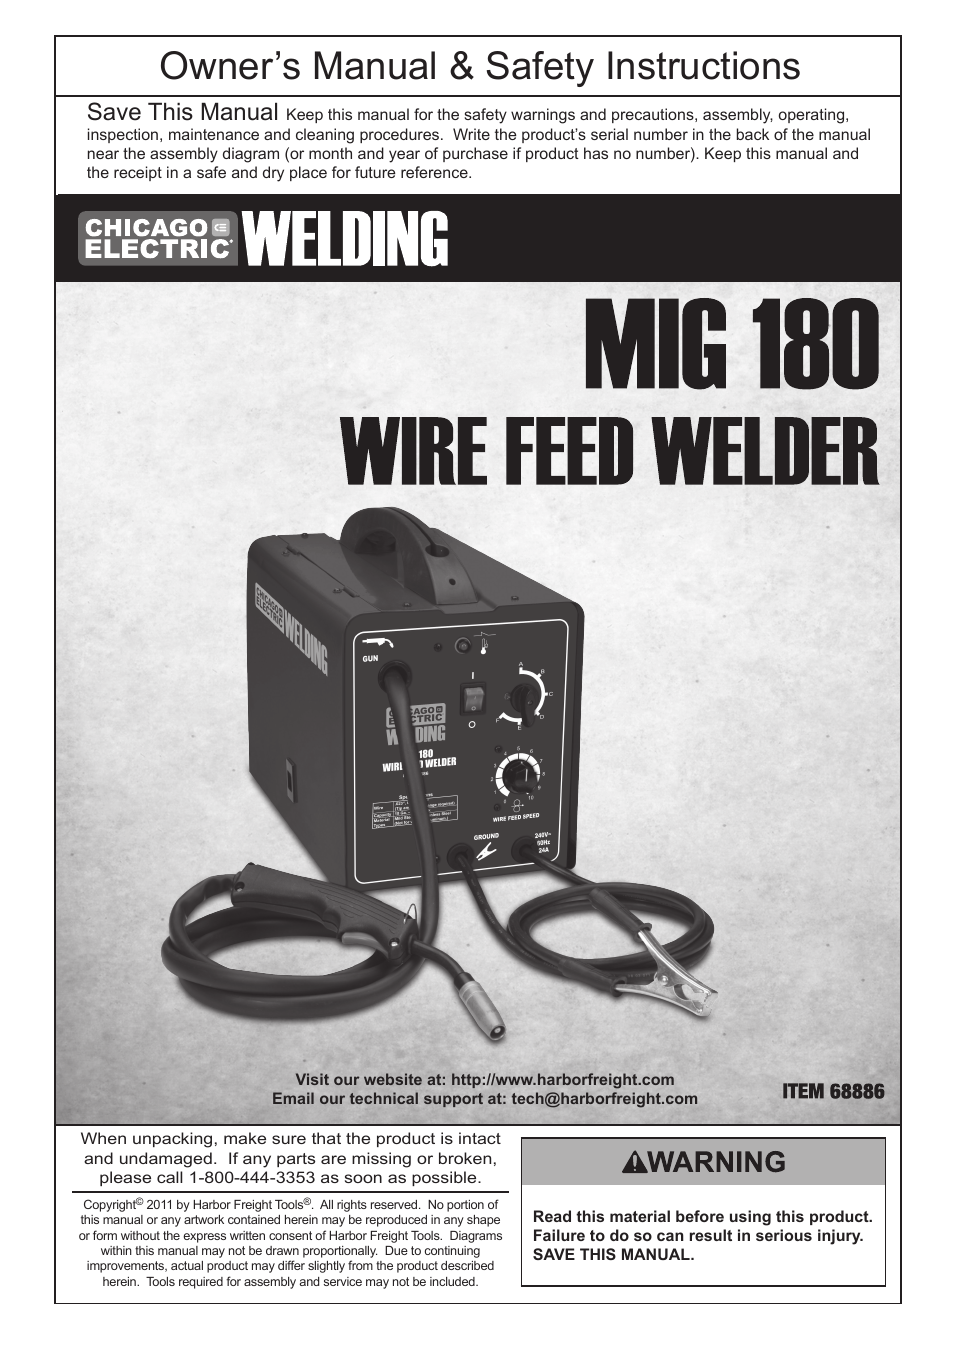 Chicago Electric Mig 180 Wire Feed Welder 68886 User Manual 32 Pages How To Read A Welding Diagram